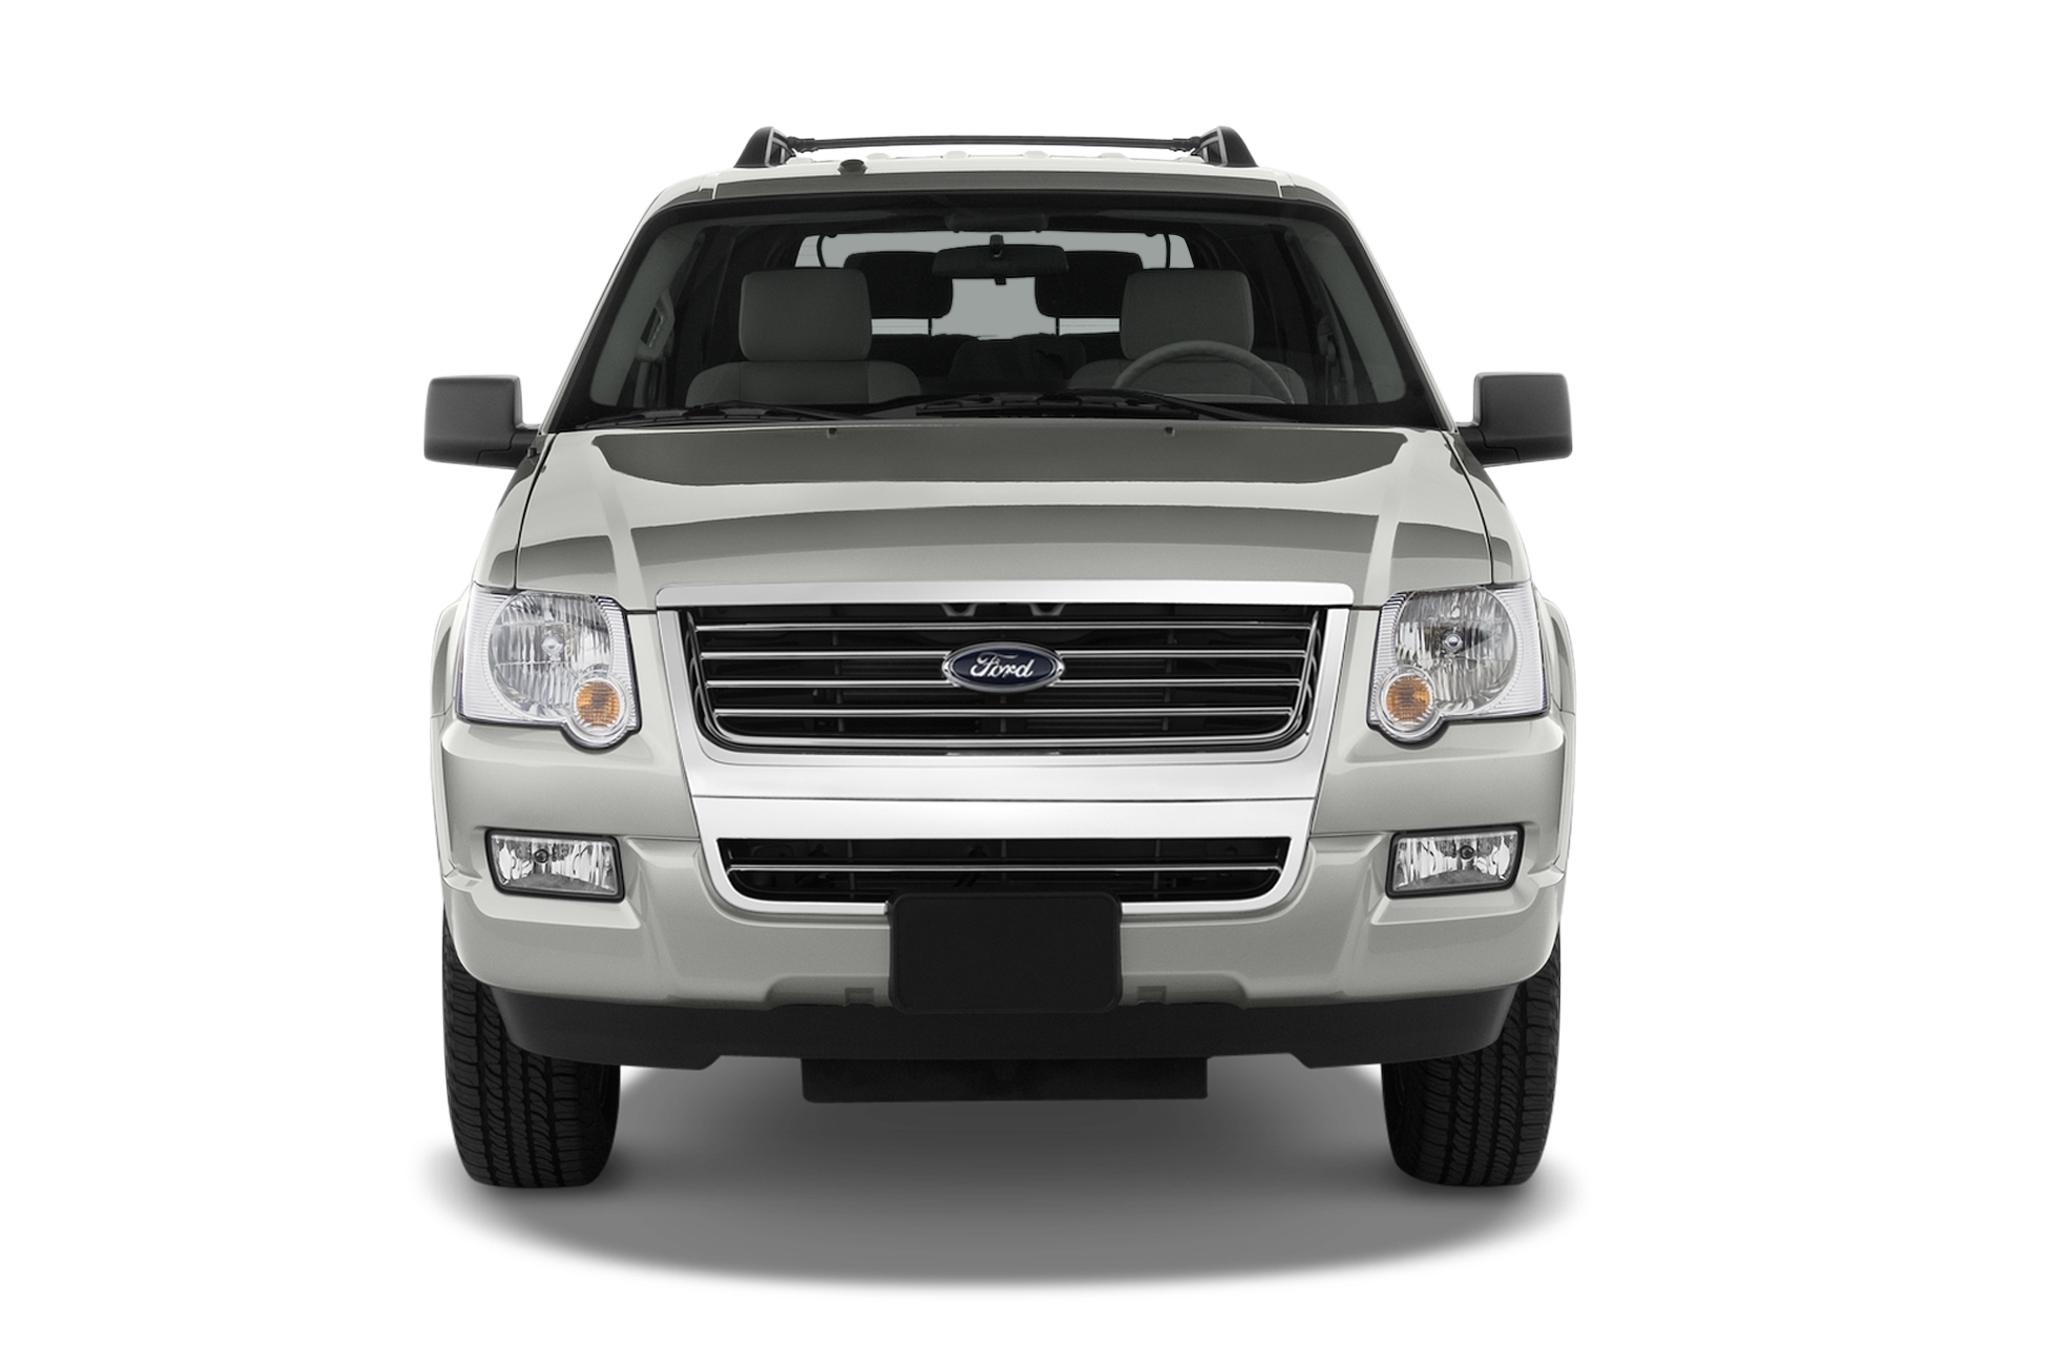 2011 Ford Explorer Will Offer Inflatable Seatbelts To Rear Seat Passengers